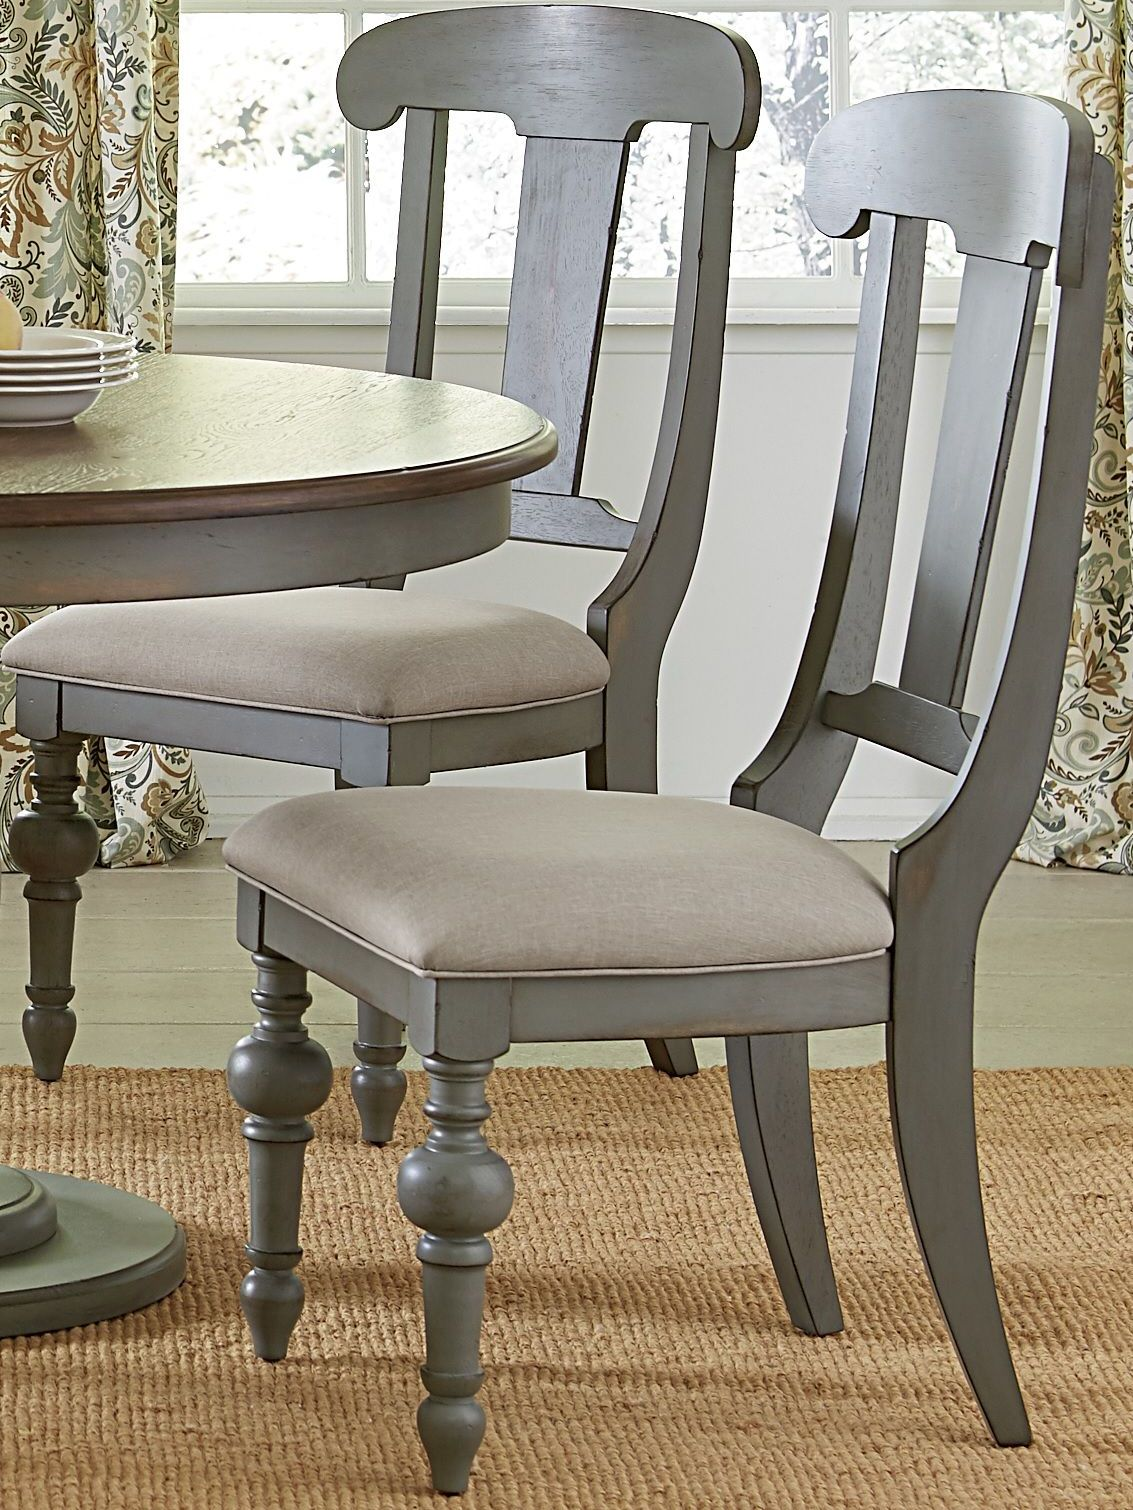 Wondrous Colonnades Putty And Oak Upholstered Dining Chair Set Of 2 Creativecarmelina Interior Chair Design Creativecarmelinacom